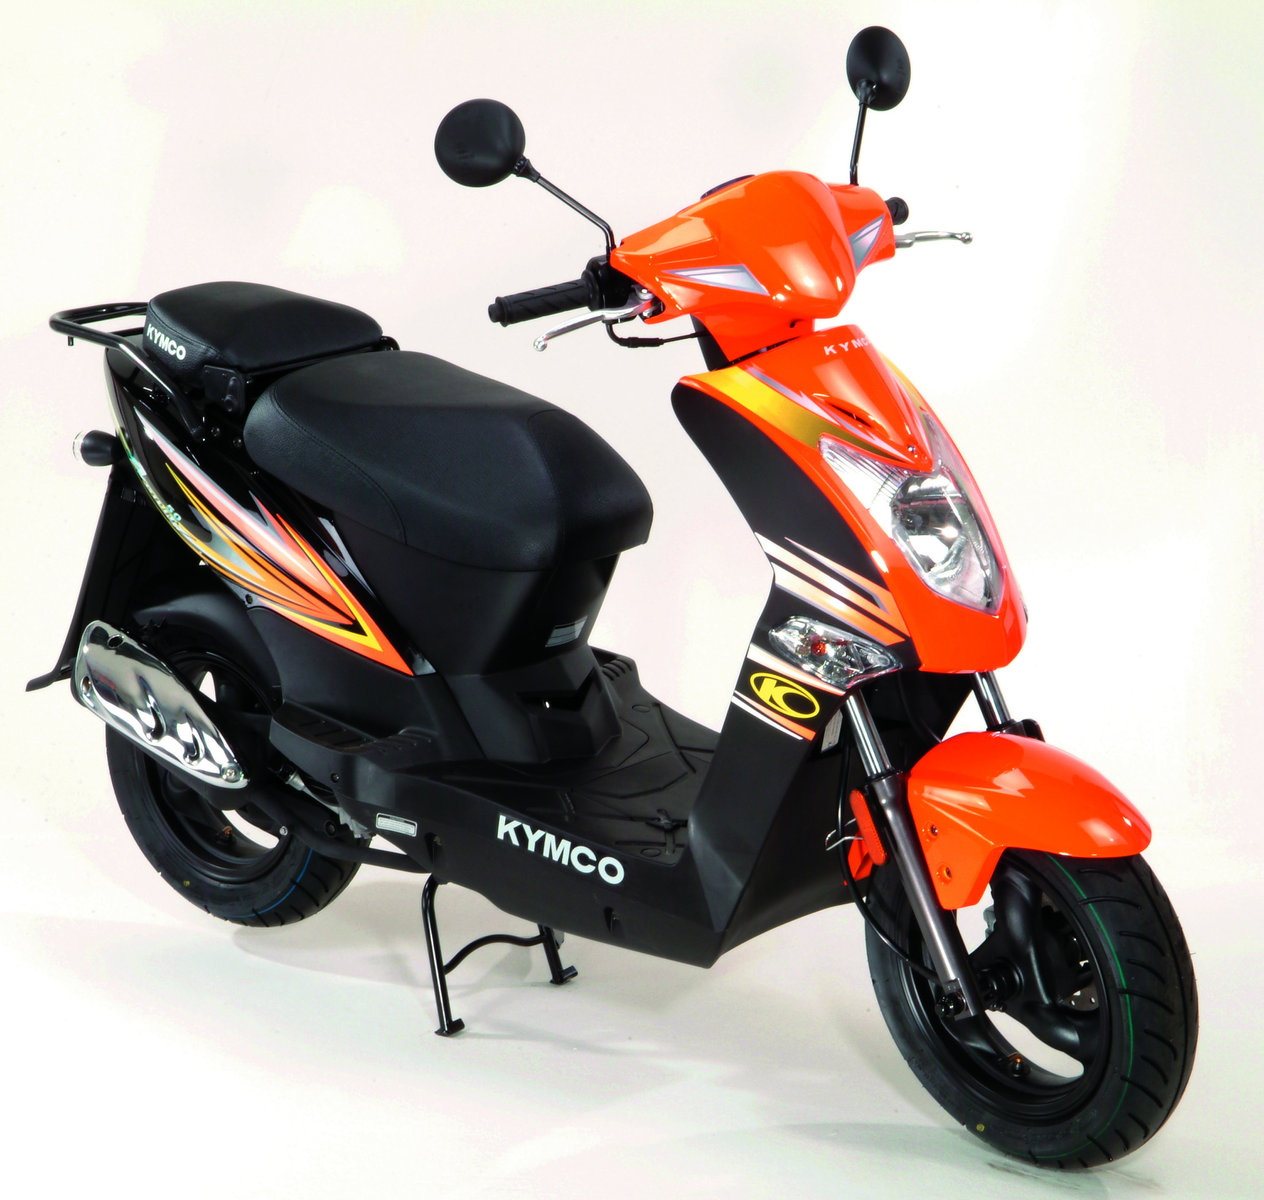 Kymco Agility 50 2006 images #101910